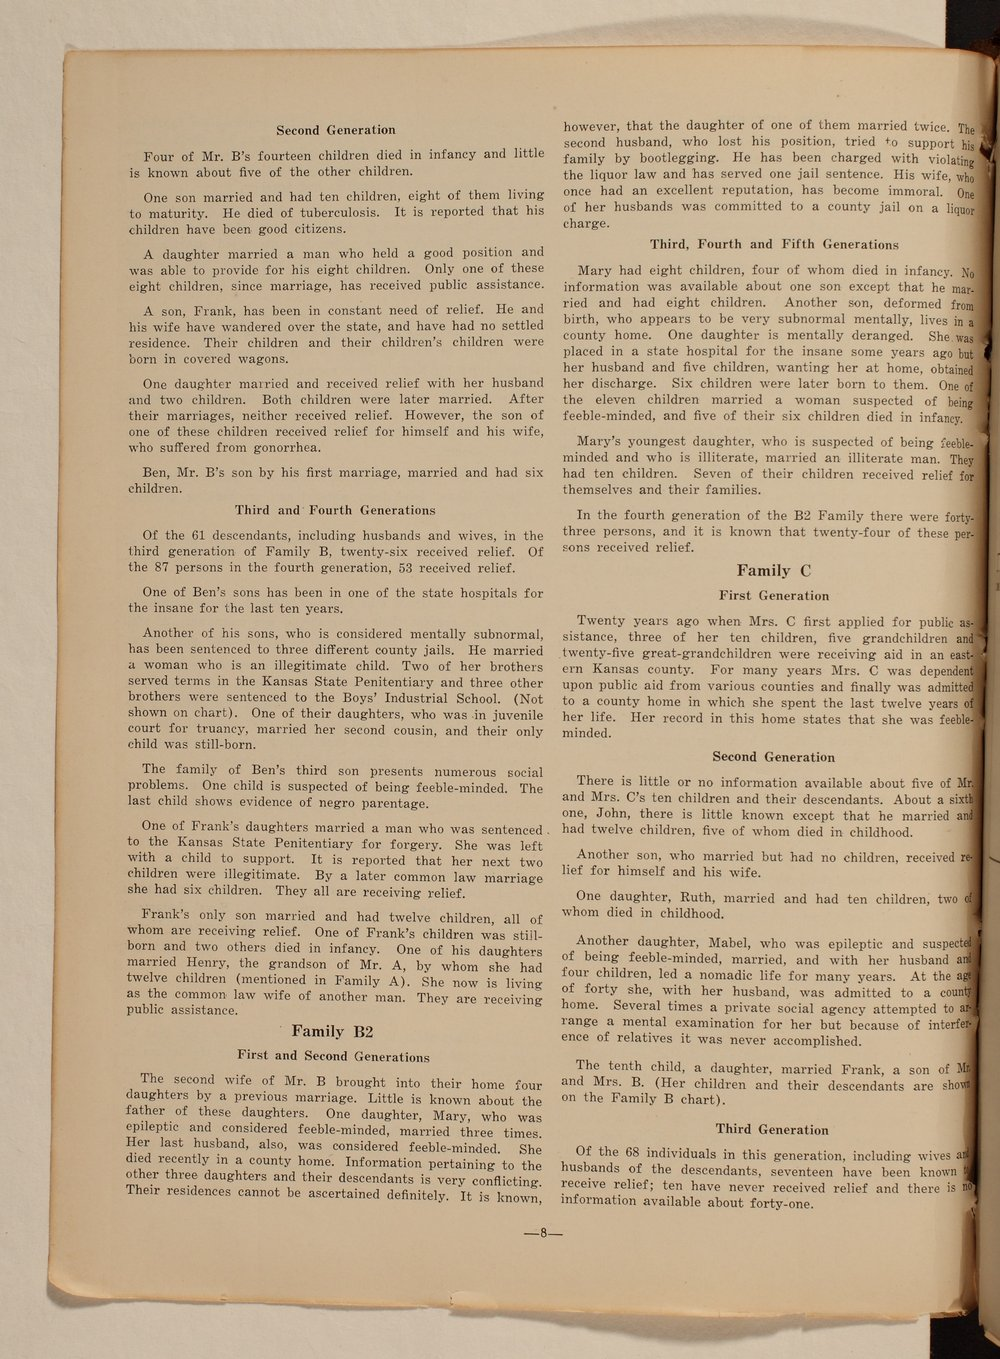 Kansas Emergency Relief Committee, bulletin 167 - 8